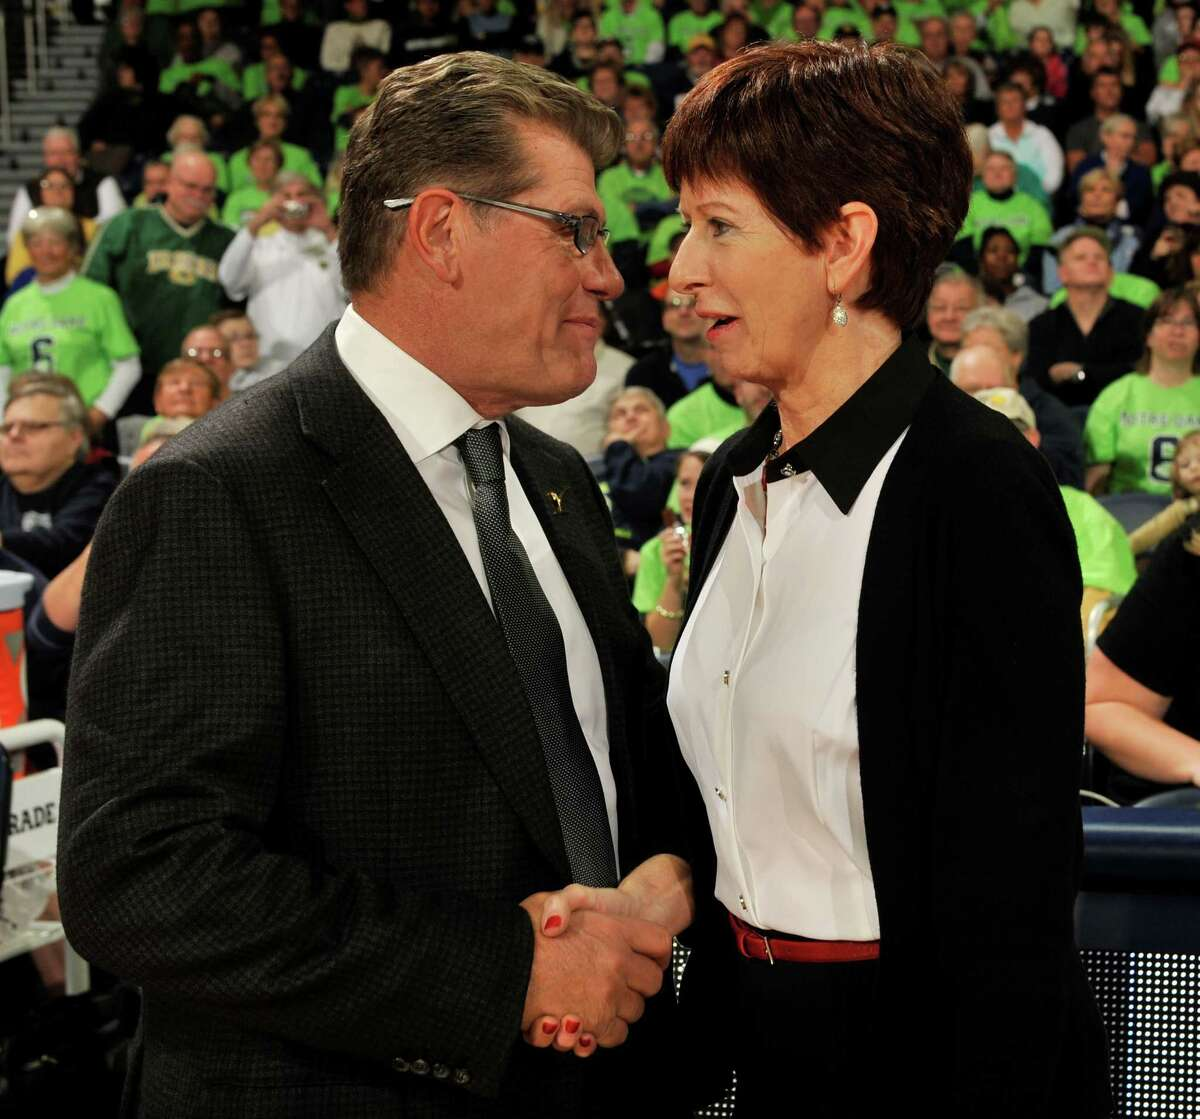 Notre Dame coach Muffet McGraw, right, and UConn coach Geno Auriemma talk before Saturday's game in South Bend, Ind.